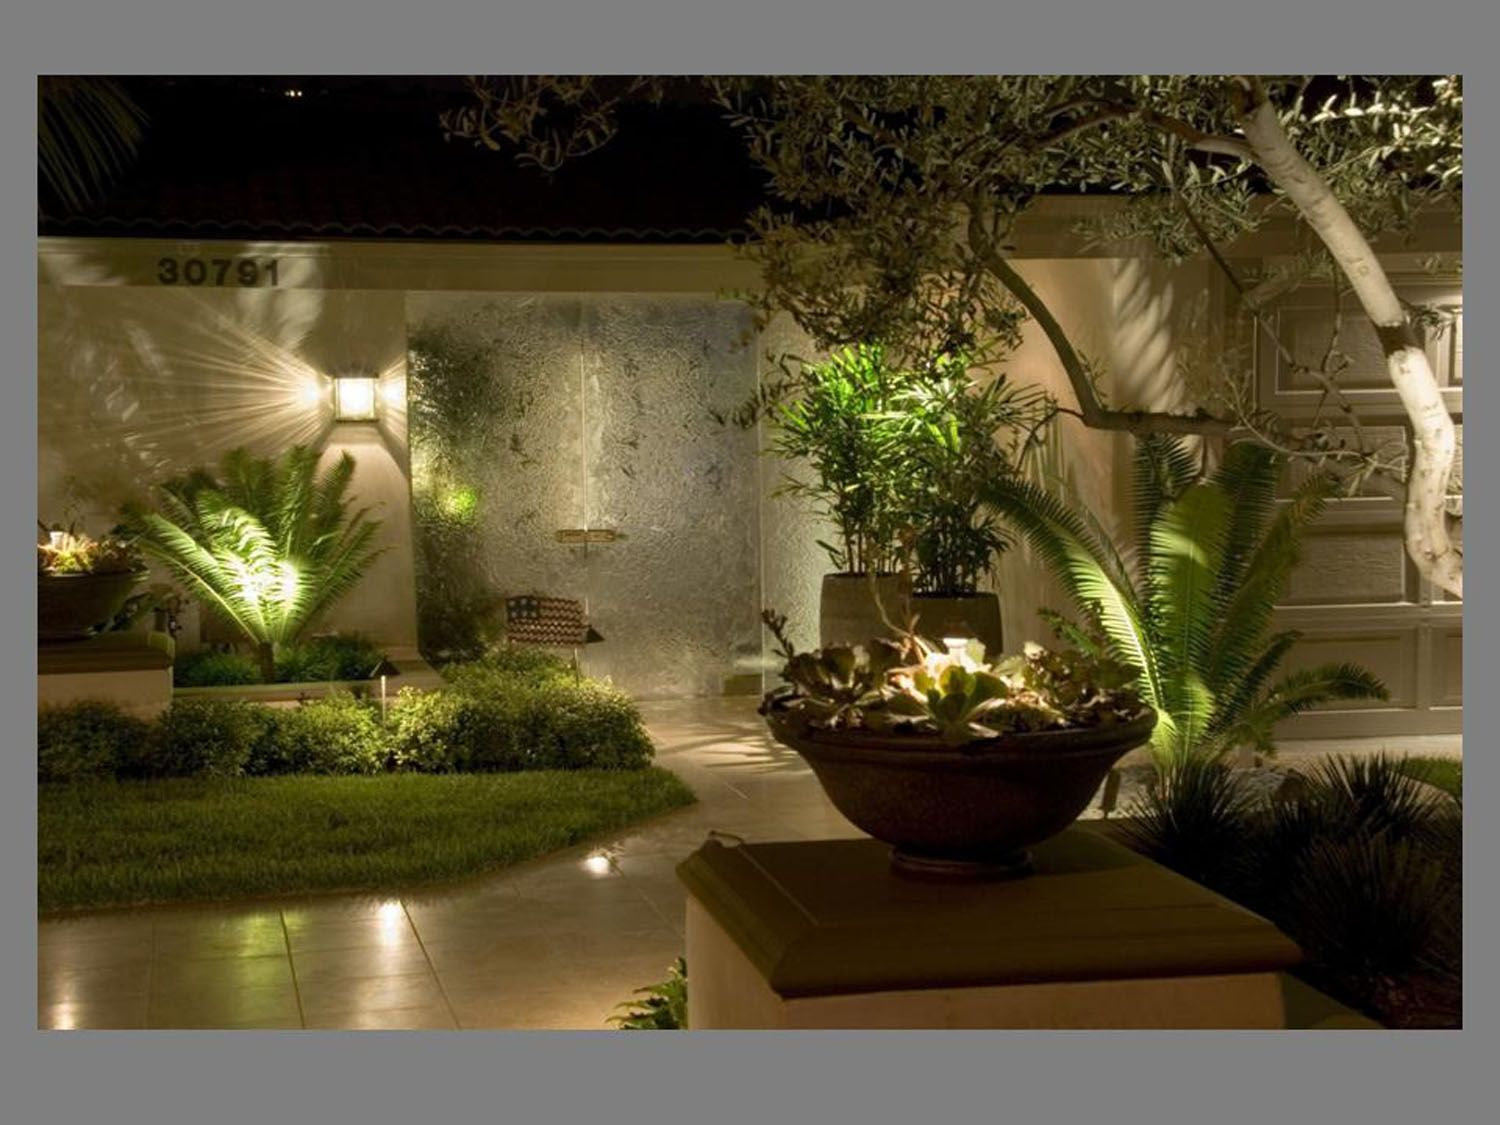 LED Landscape Lighting Design Want to give your garden a festive ...